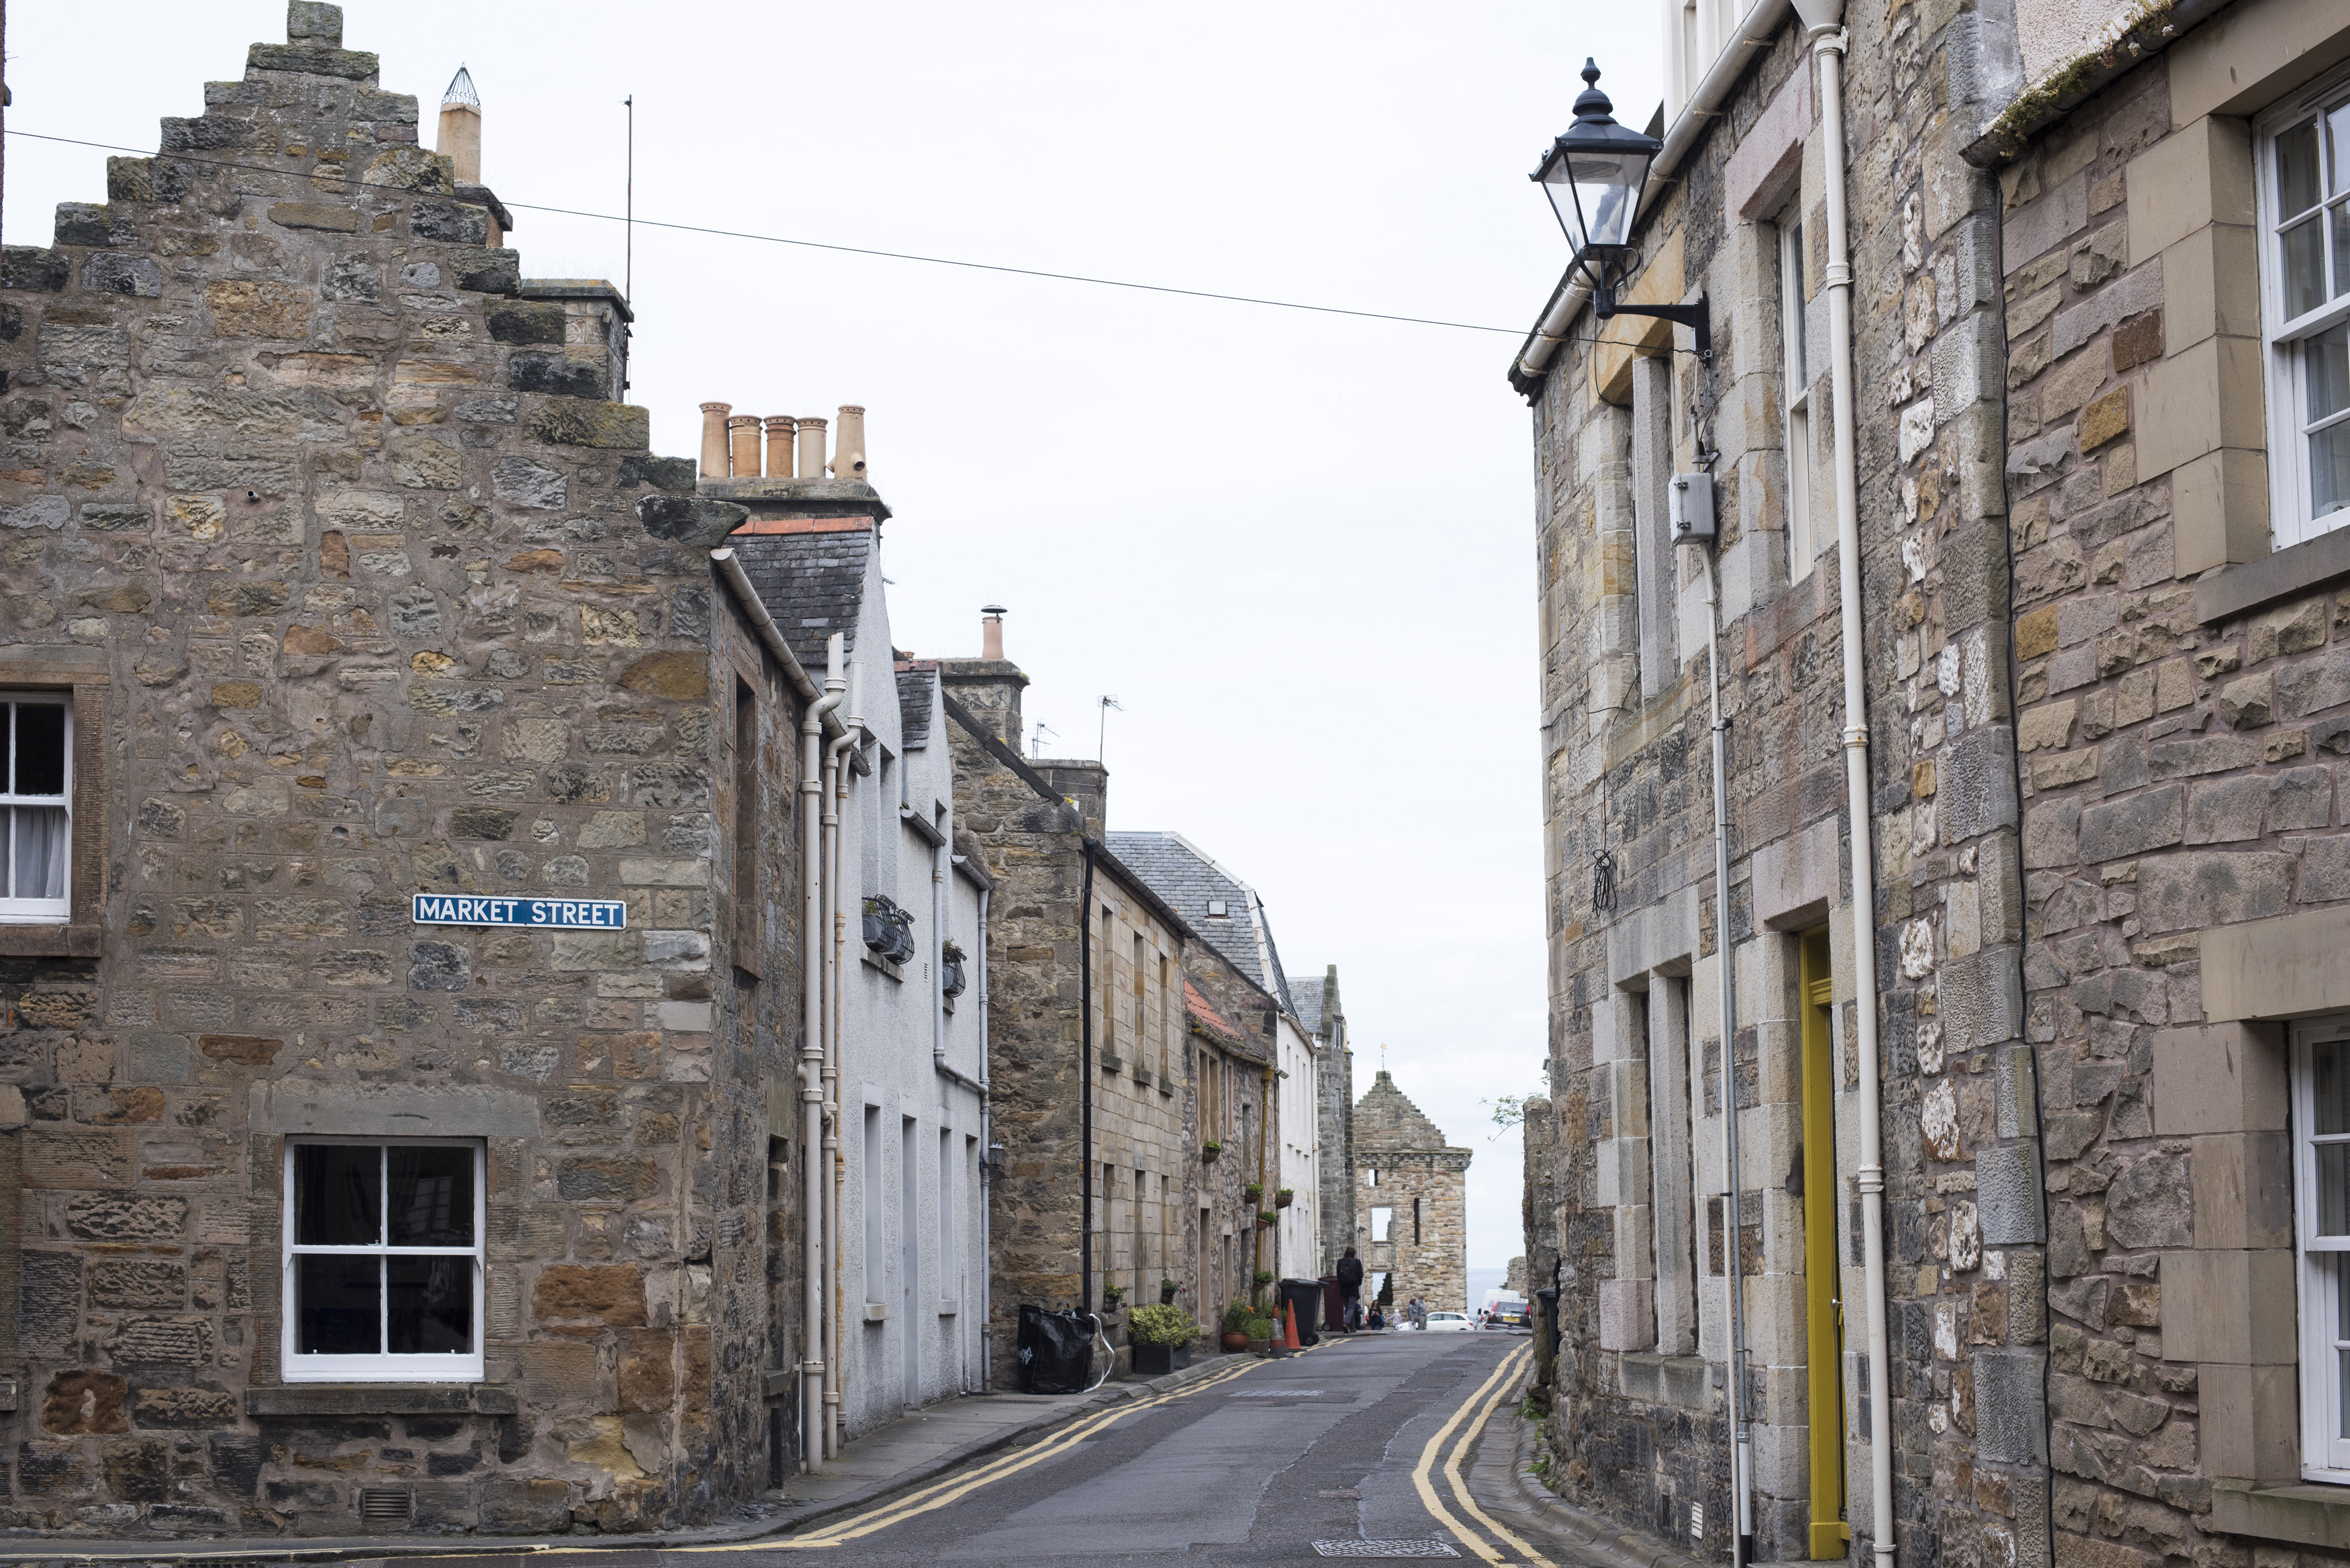 Two rows of old stone brick residential buildings on narrow road in Scotland near Saint Andrews